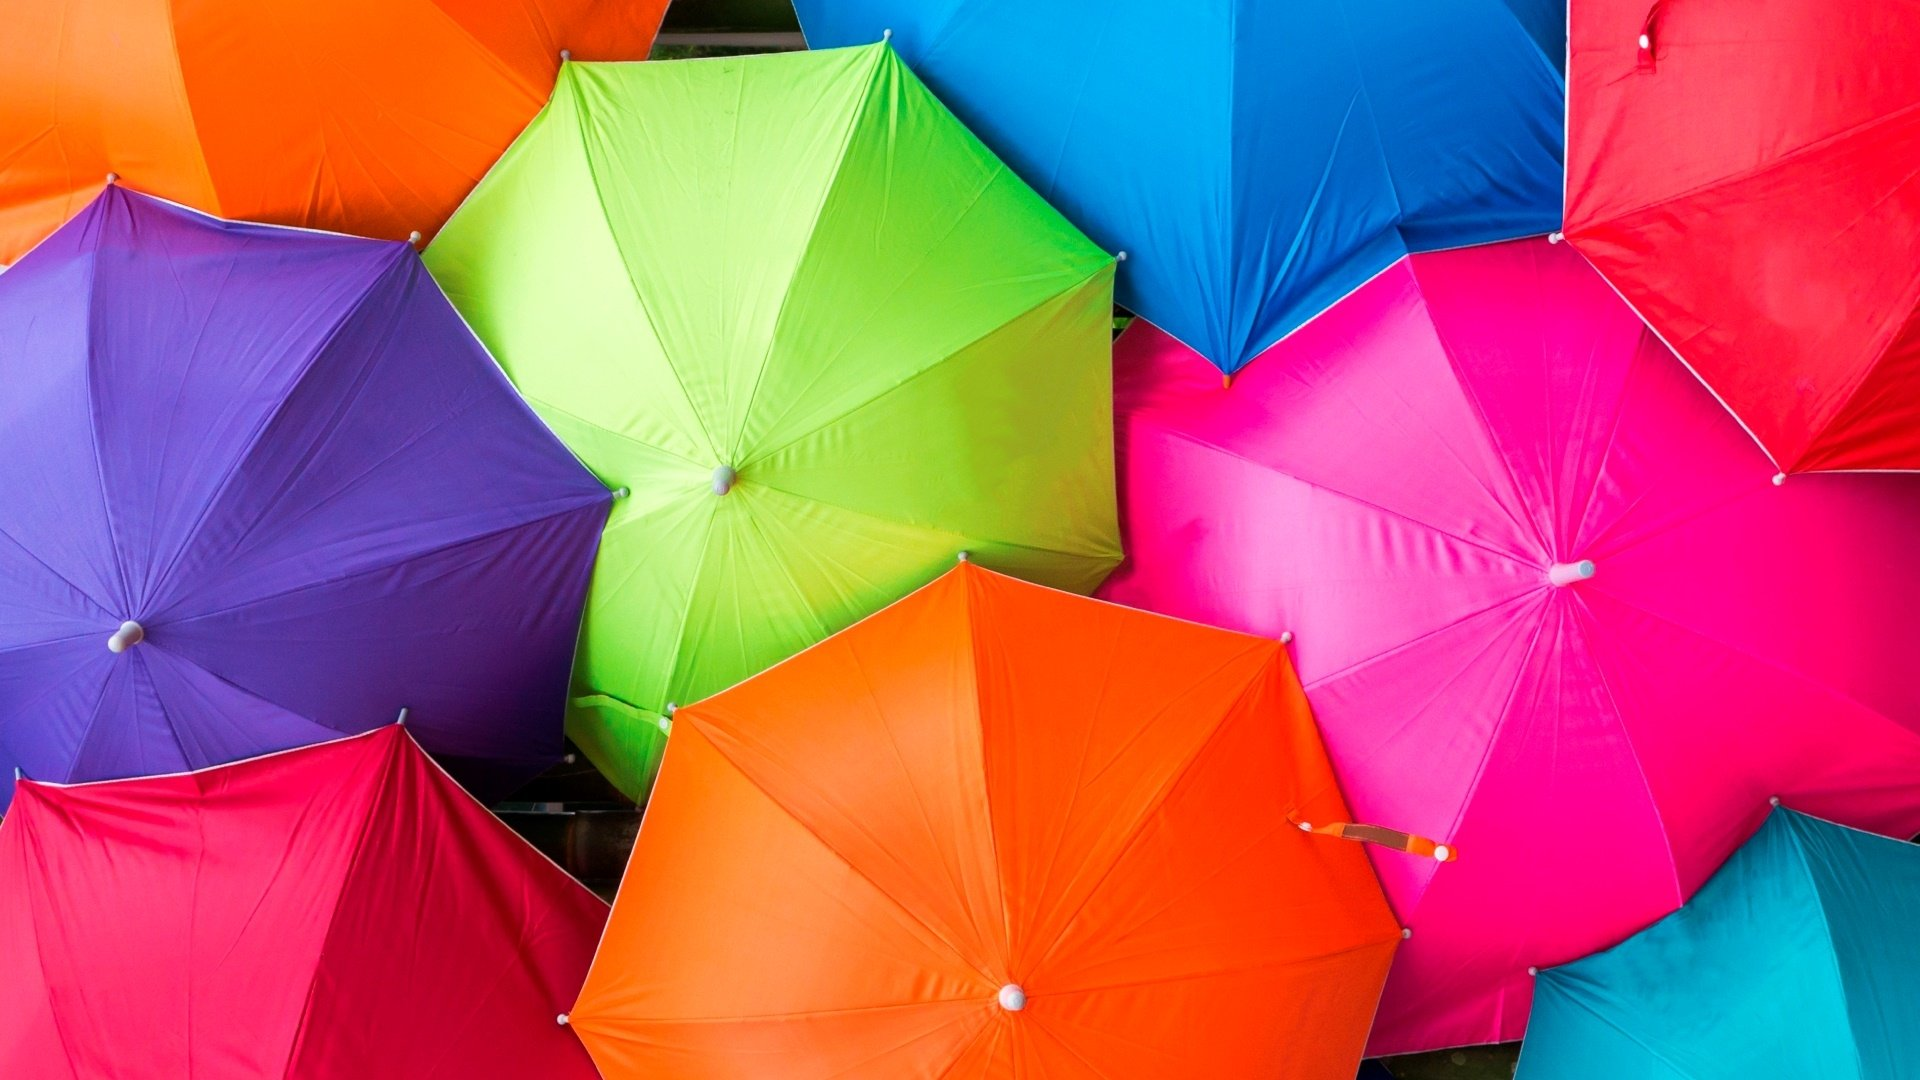 Windows 10 Wallpaper Umbrella - HD Wallpaper